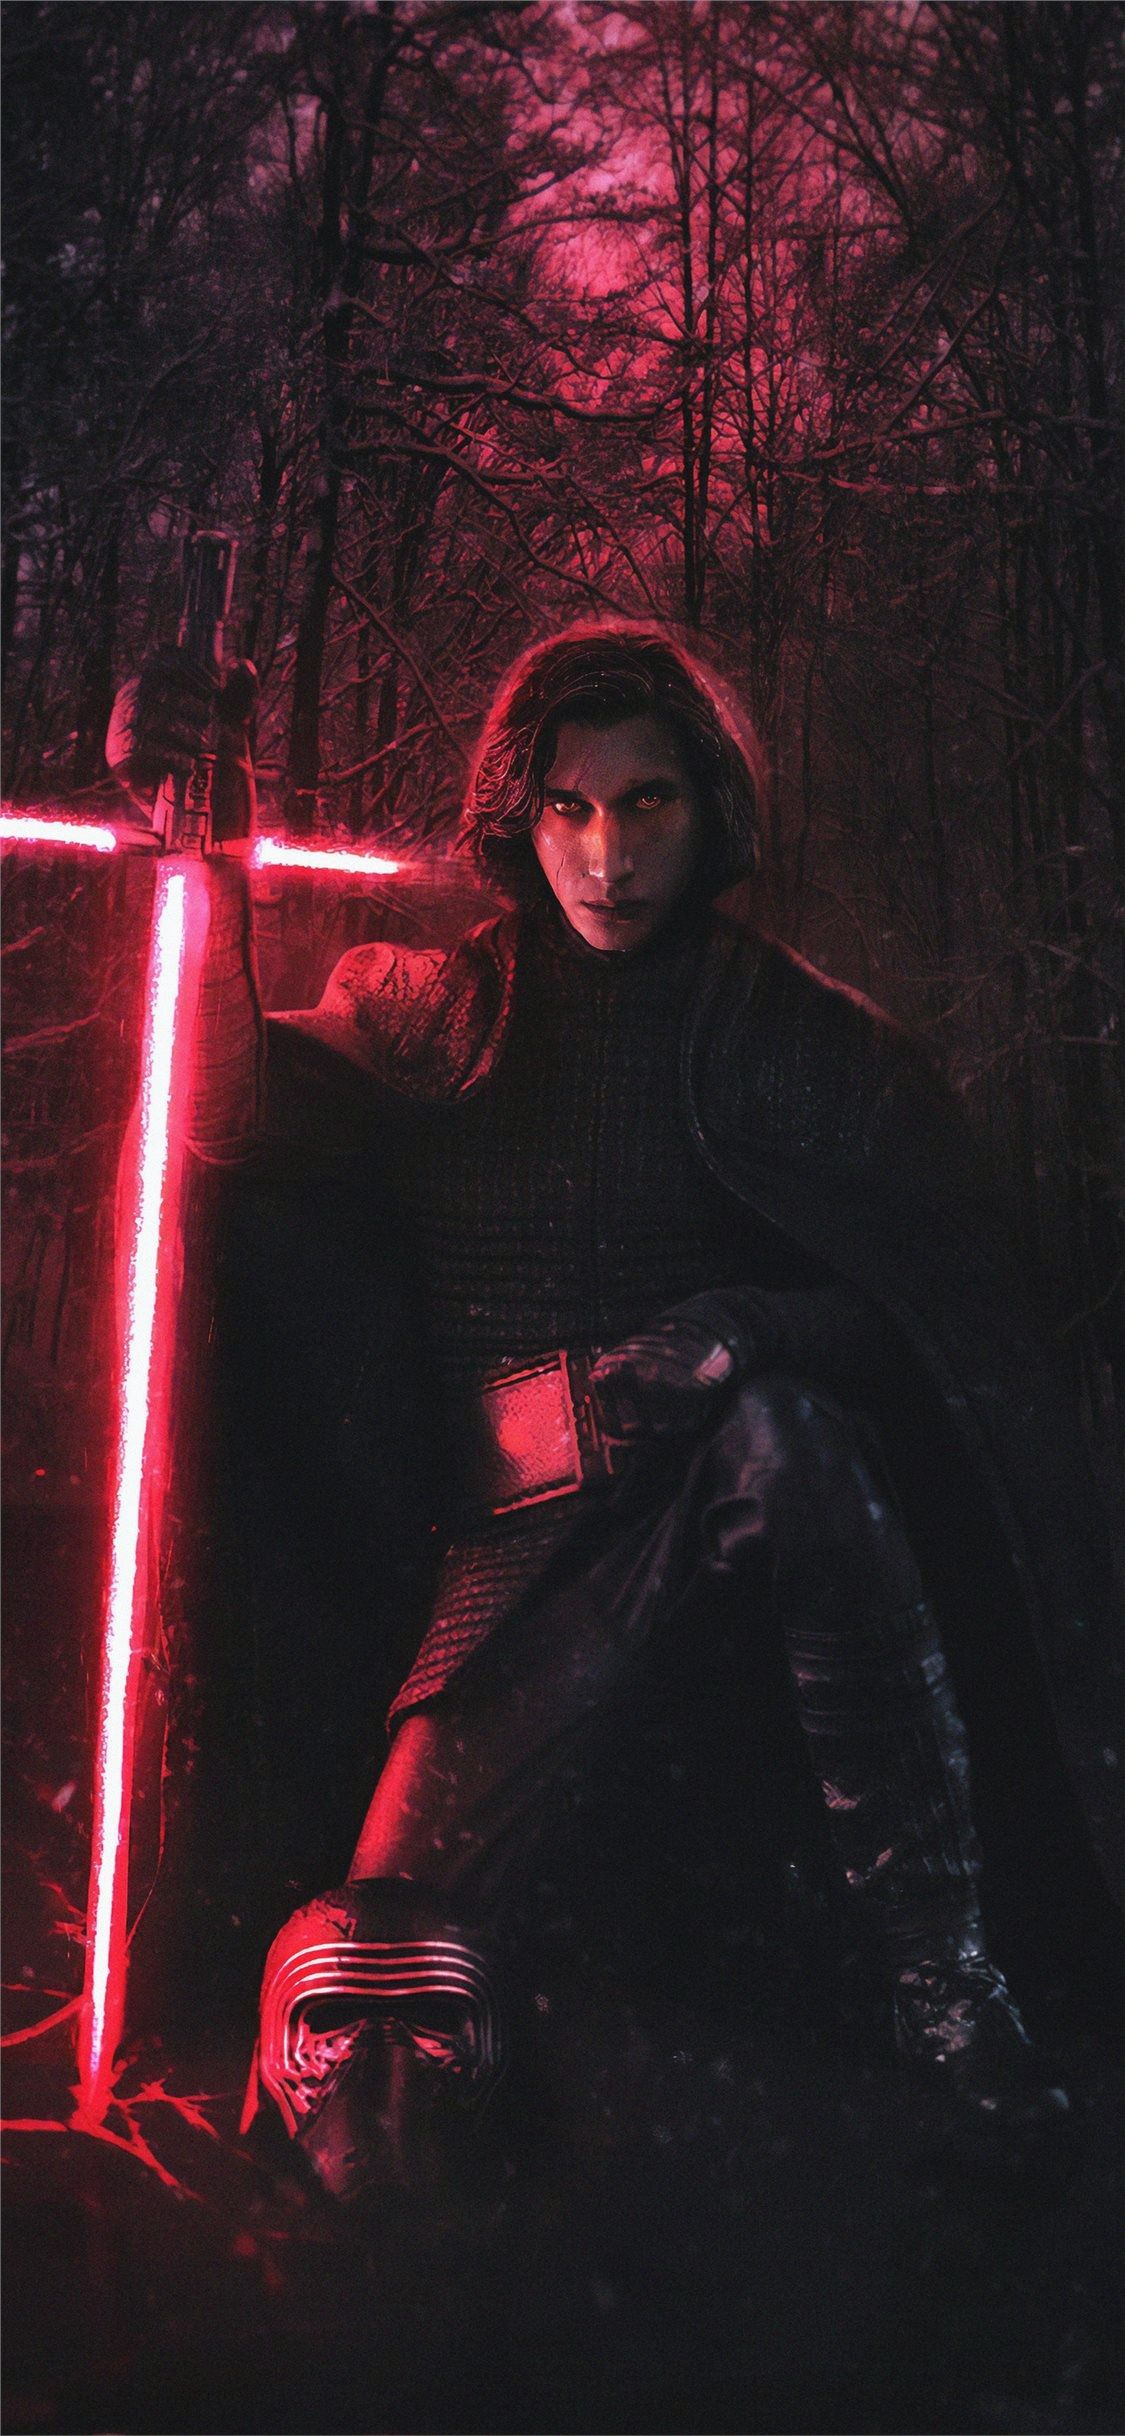 Kylo Ren 4k New Iphone X Wallpapers Free Download Kylo Ren Wallpaper Star Wars Wallpaper Kylo Ren